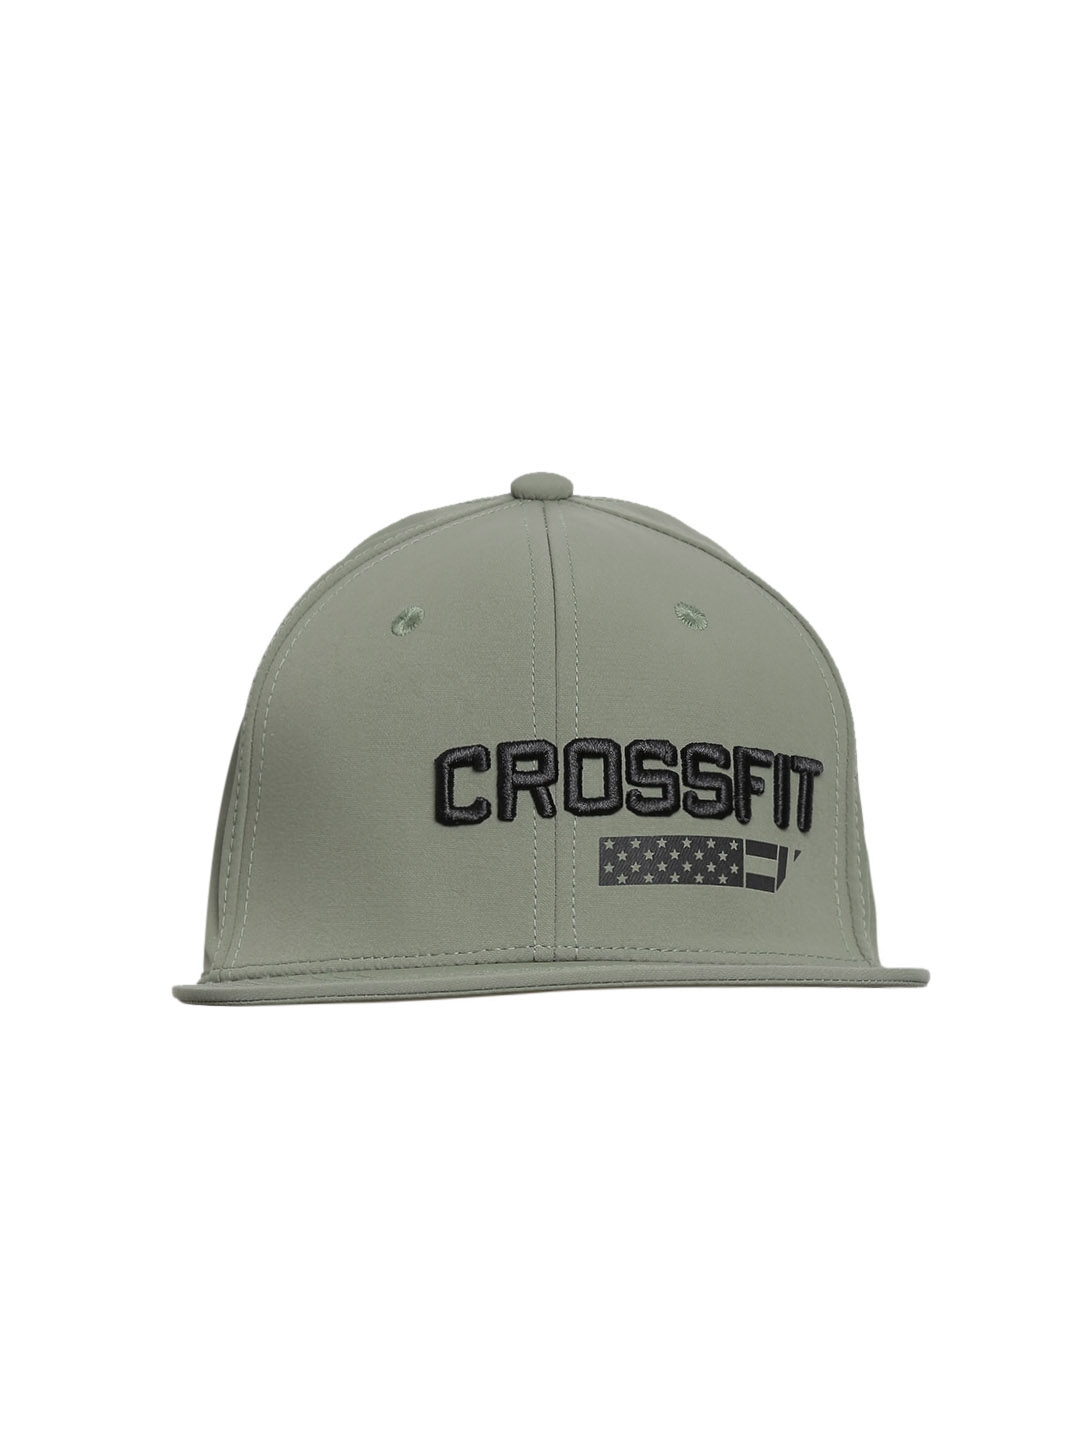 4979a3a6548 Buy Reebok Unisex Olive Green CrossFit A Flex Training Cap - Caps for Unisex  1783004